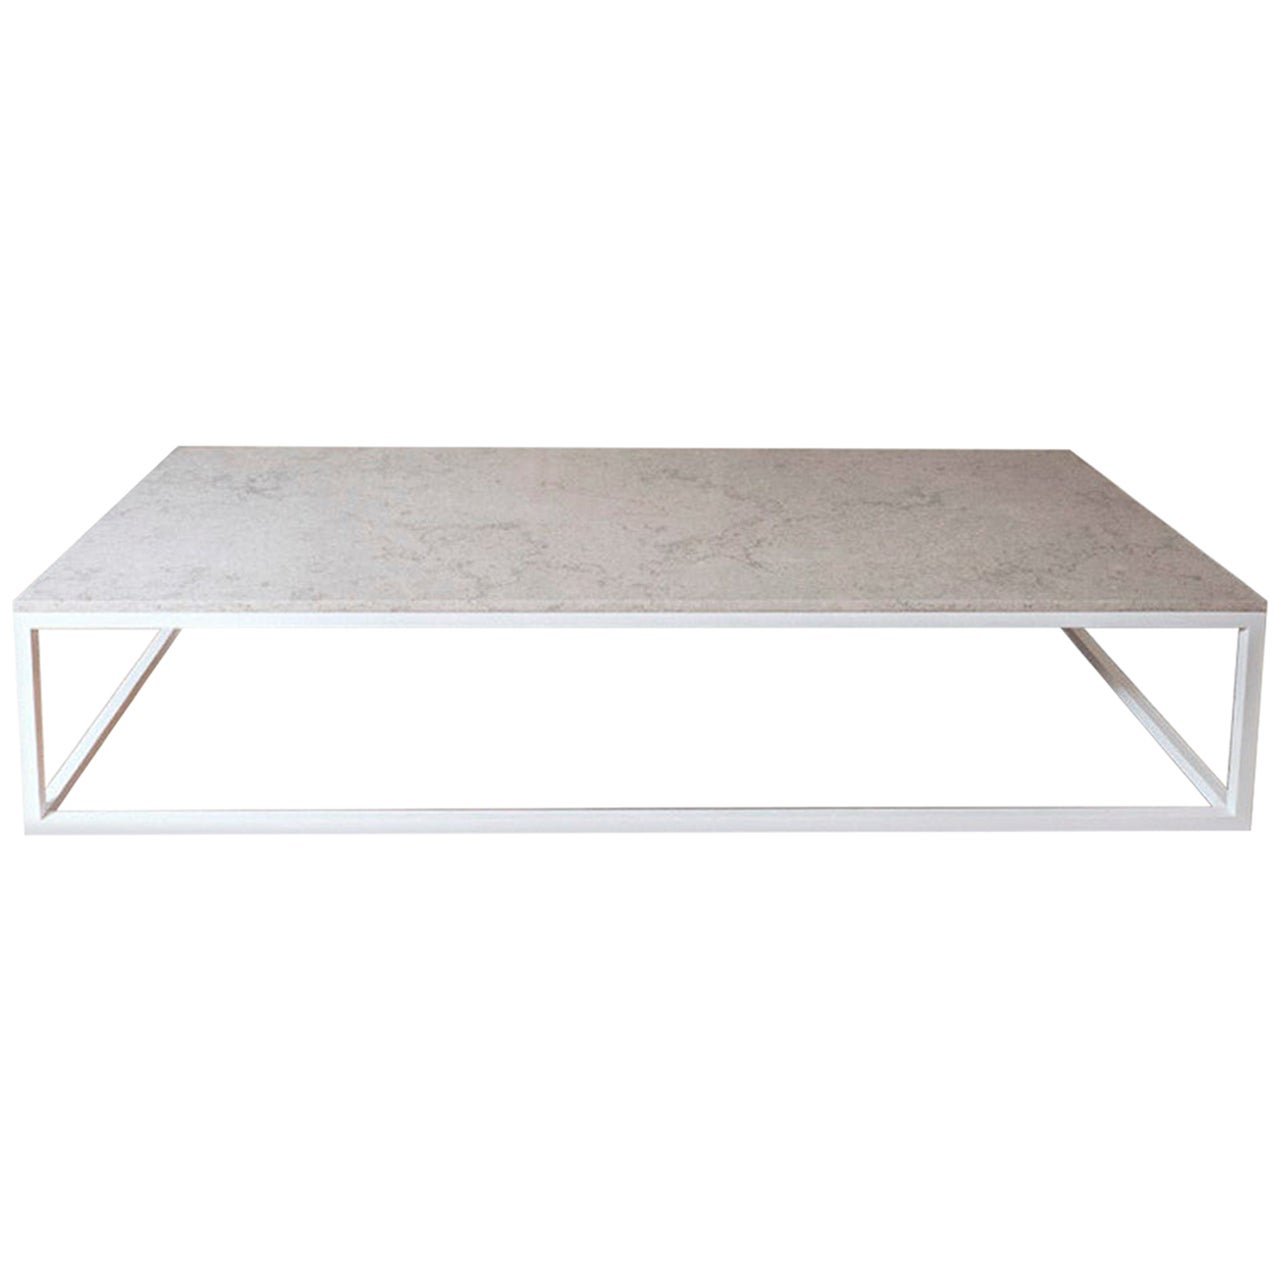 Lance Thompson Made to Order Stone Top & Solid Stainless Steel White Base Coffee